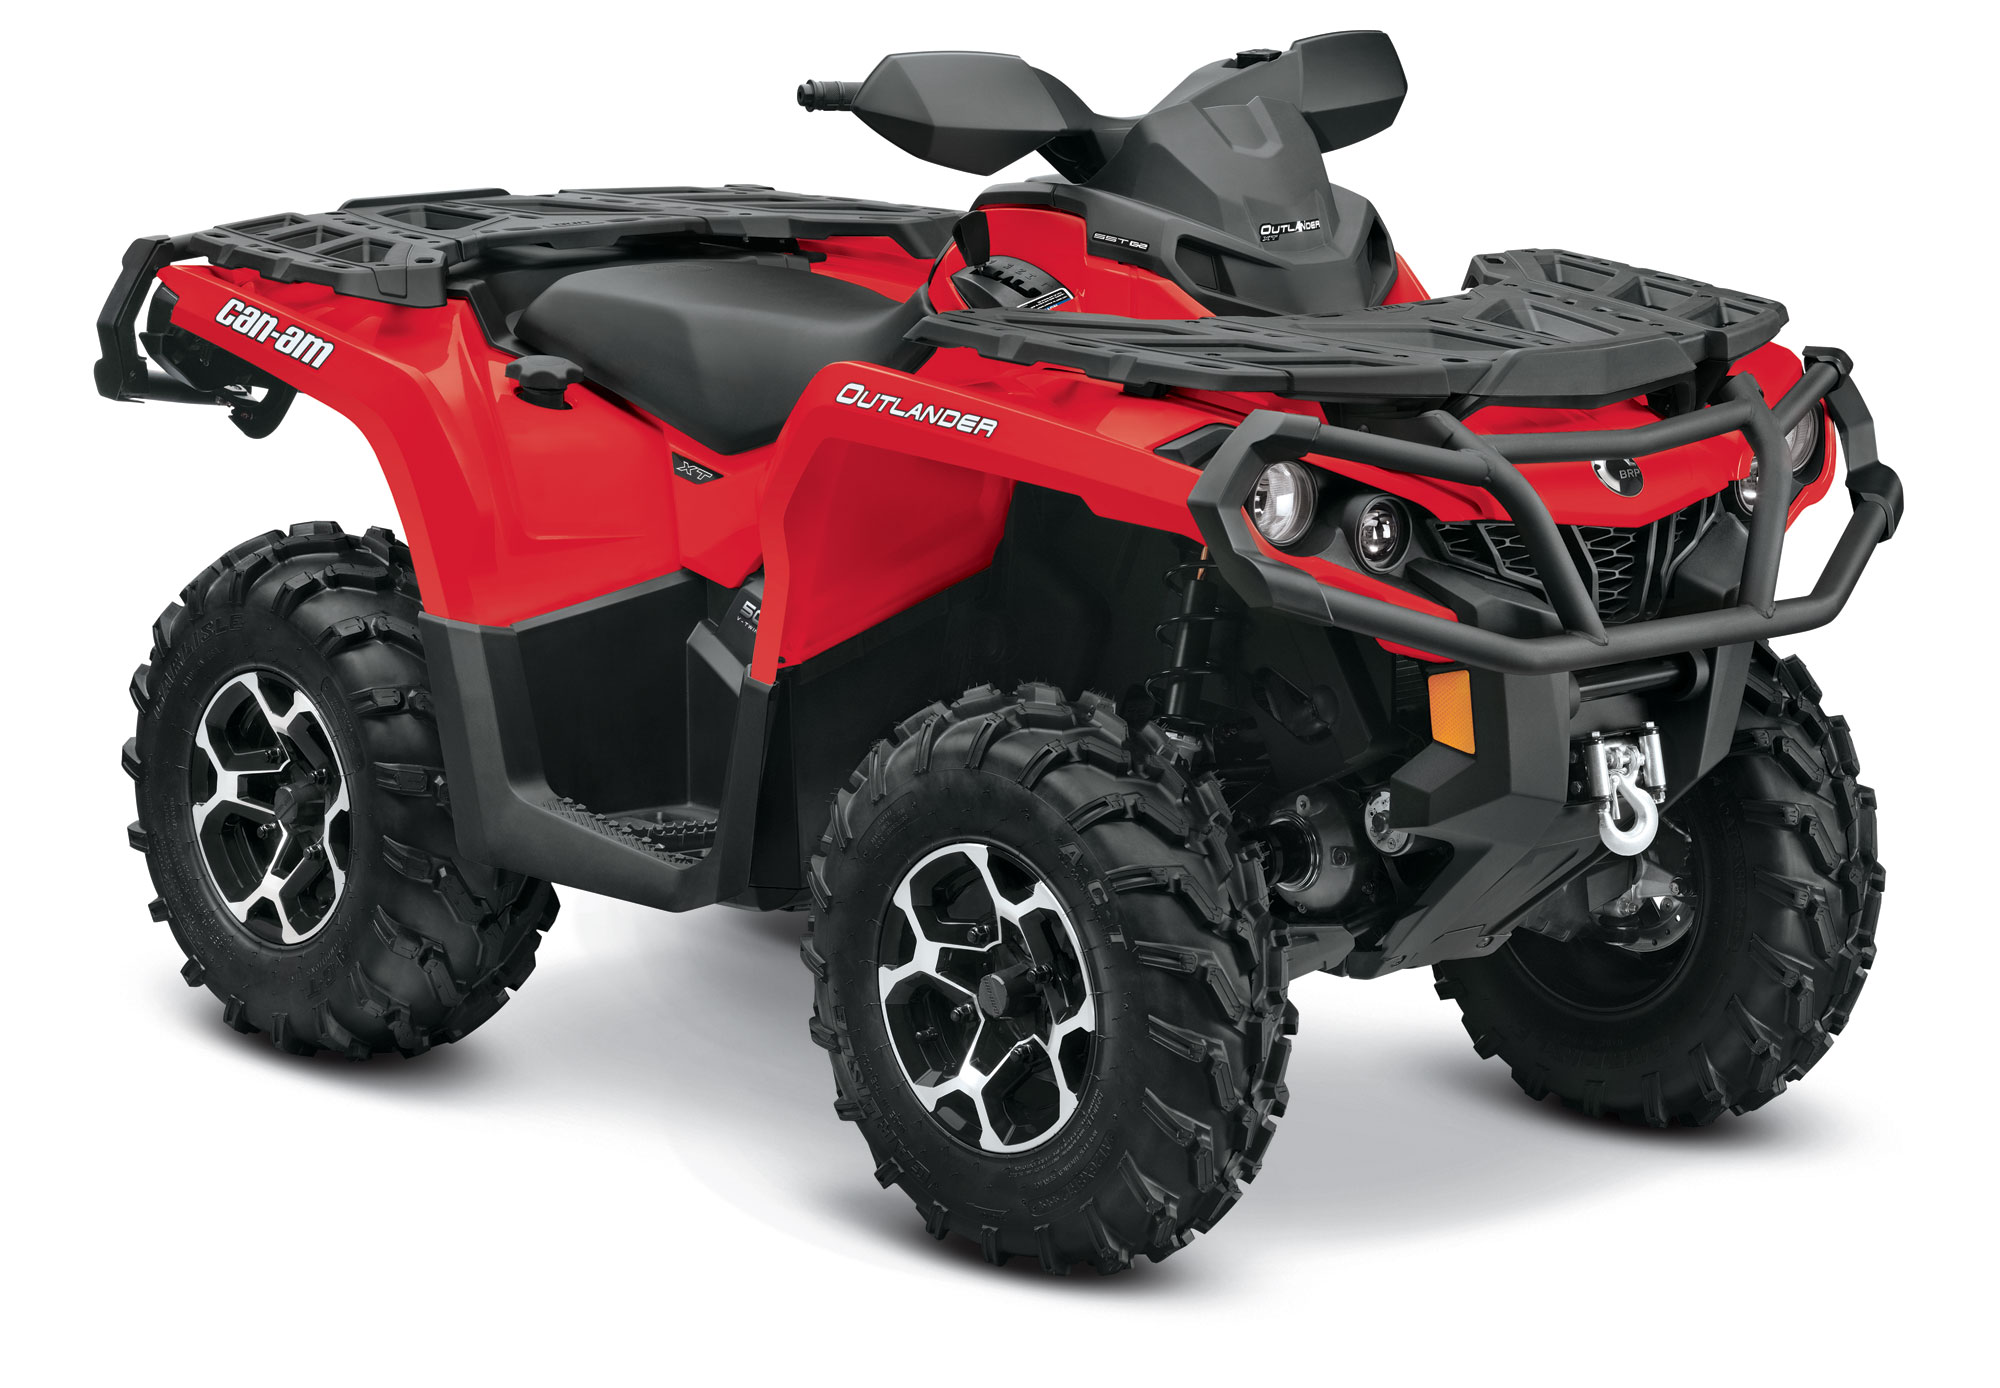 2013 Can-Am Outlander XT 500 Review